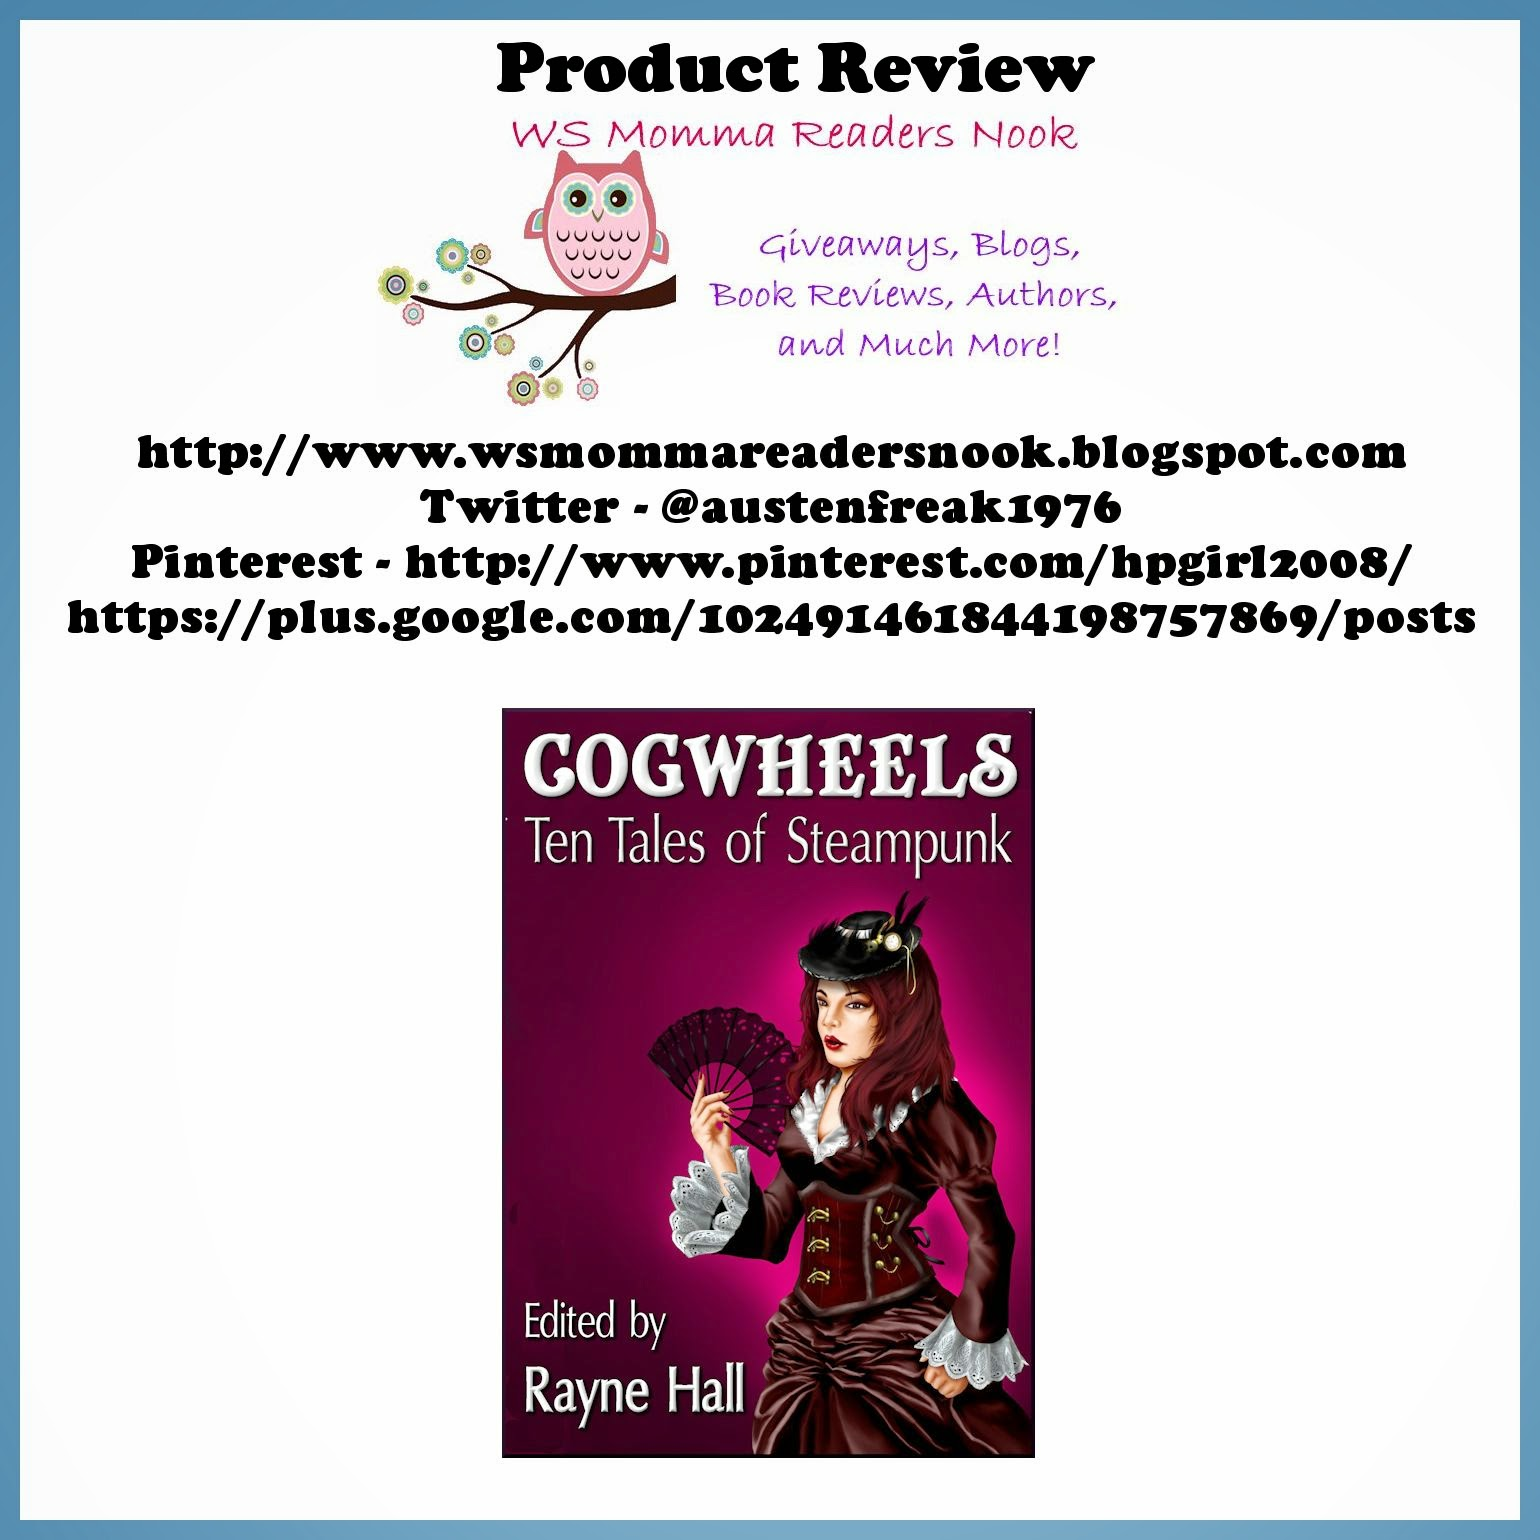 http://www.amazon.com/Cogwheels-Steampunk-Fantasy-Horror-Stories-ebook/dp/B00LLQKVR4/ref=sr_1_1?ie=UTF8&qid=1413778381&sr=8-1&keywords=cogwheels+ten+tales+of+steampunk